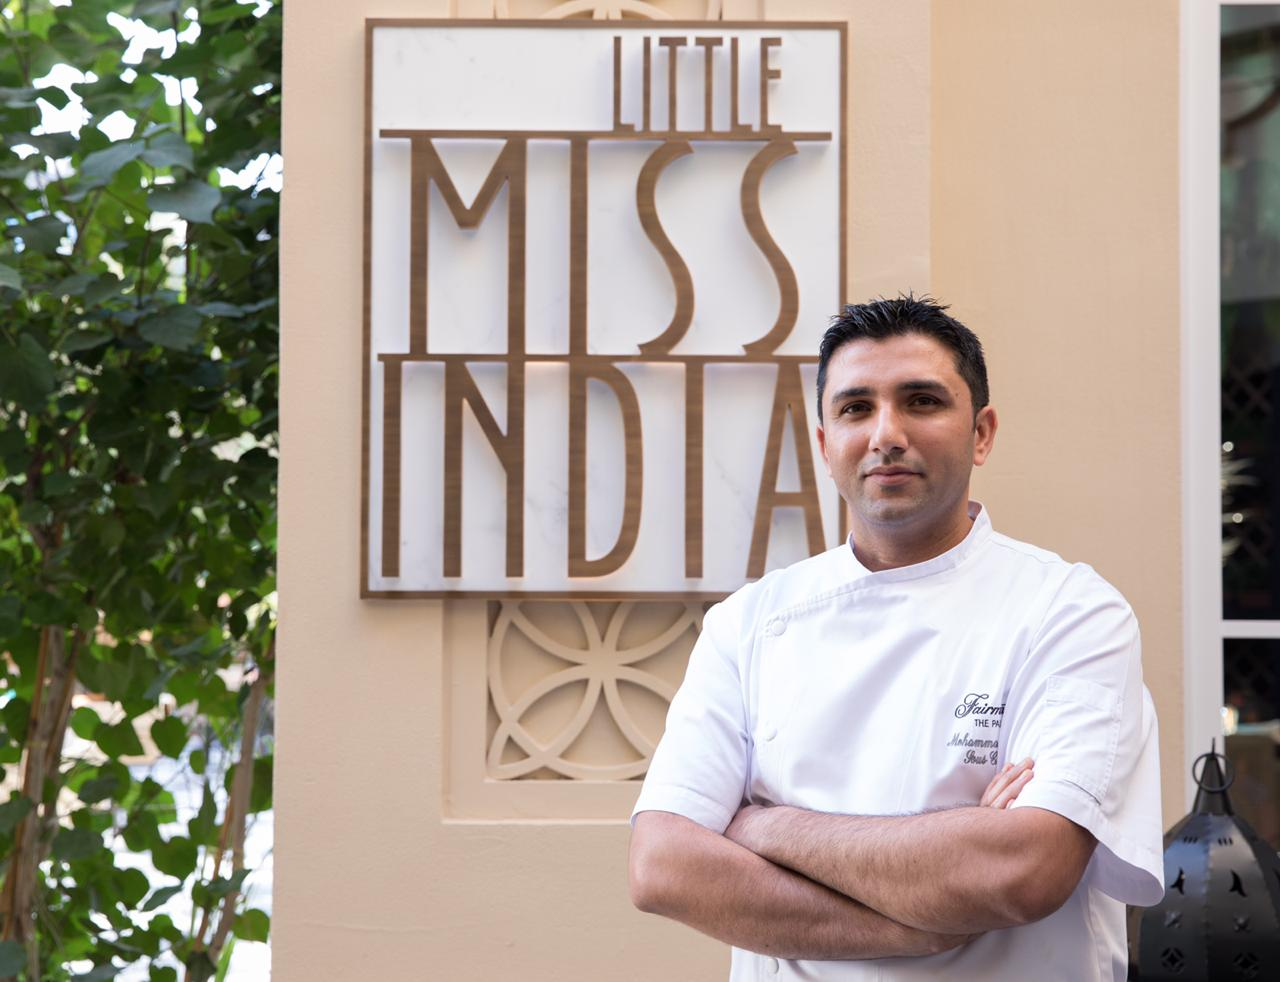 Little Miss India, Ms Mohini Singh, little miss india dubai, Fairmont The Palm Dubai, Chef Anup Pawar, Chef mohammad Arif,